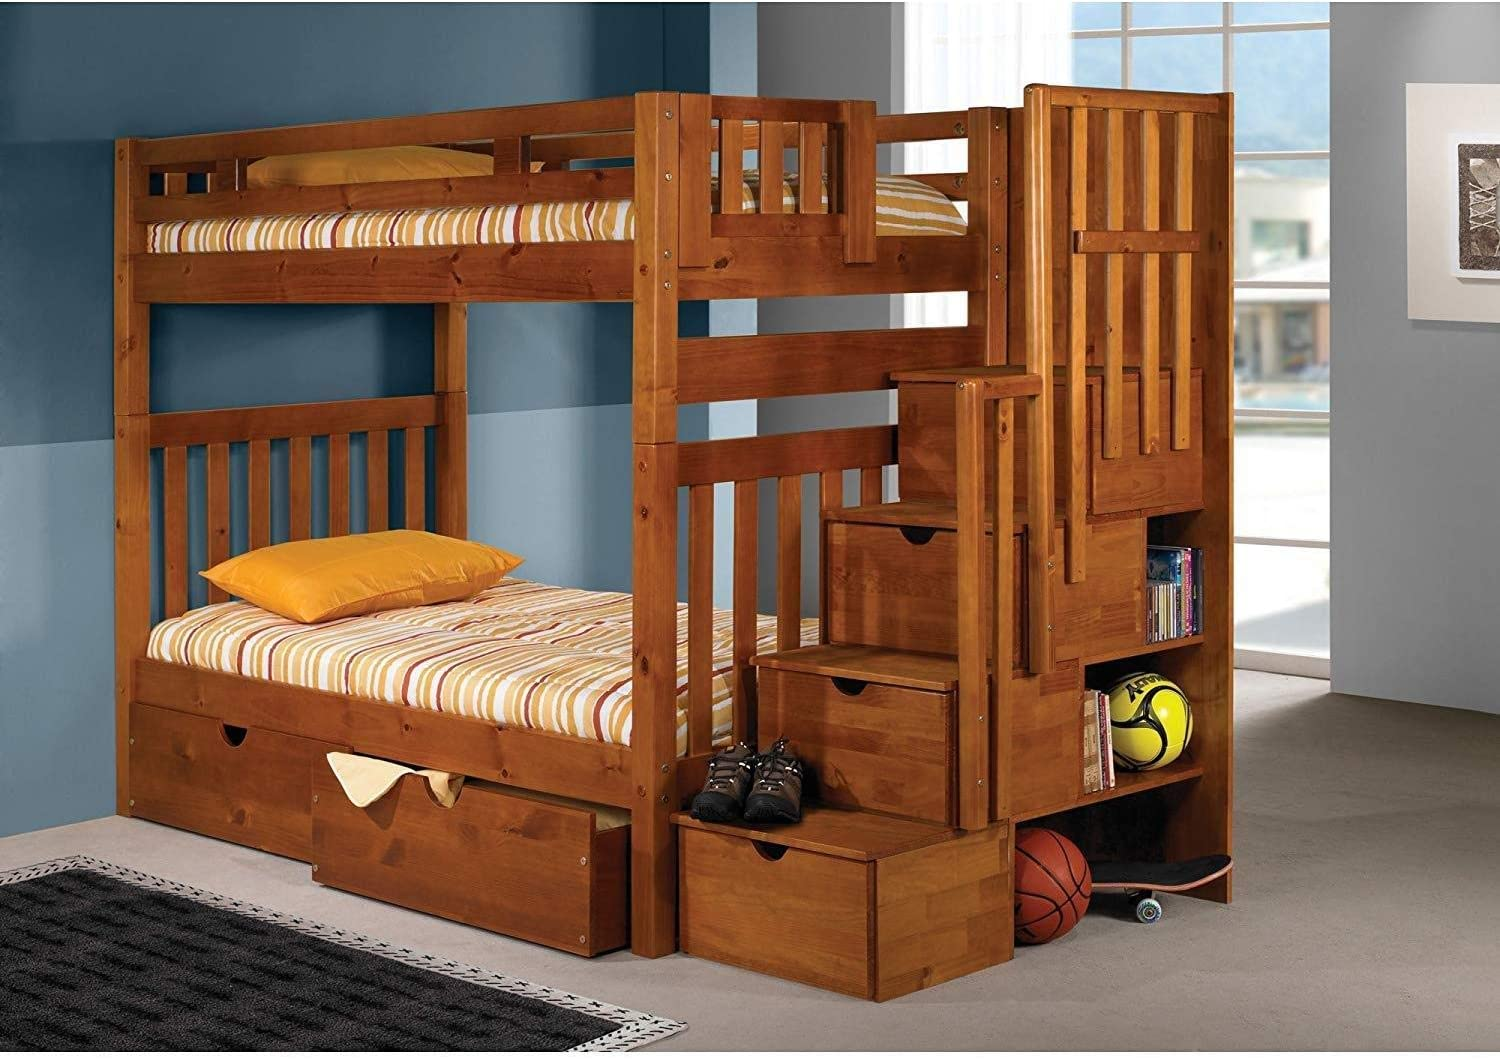 Donco Kids Tall Mission Stairway Bunk Dual Under Bed Drawers, Twin/Twin Honey